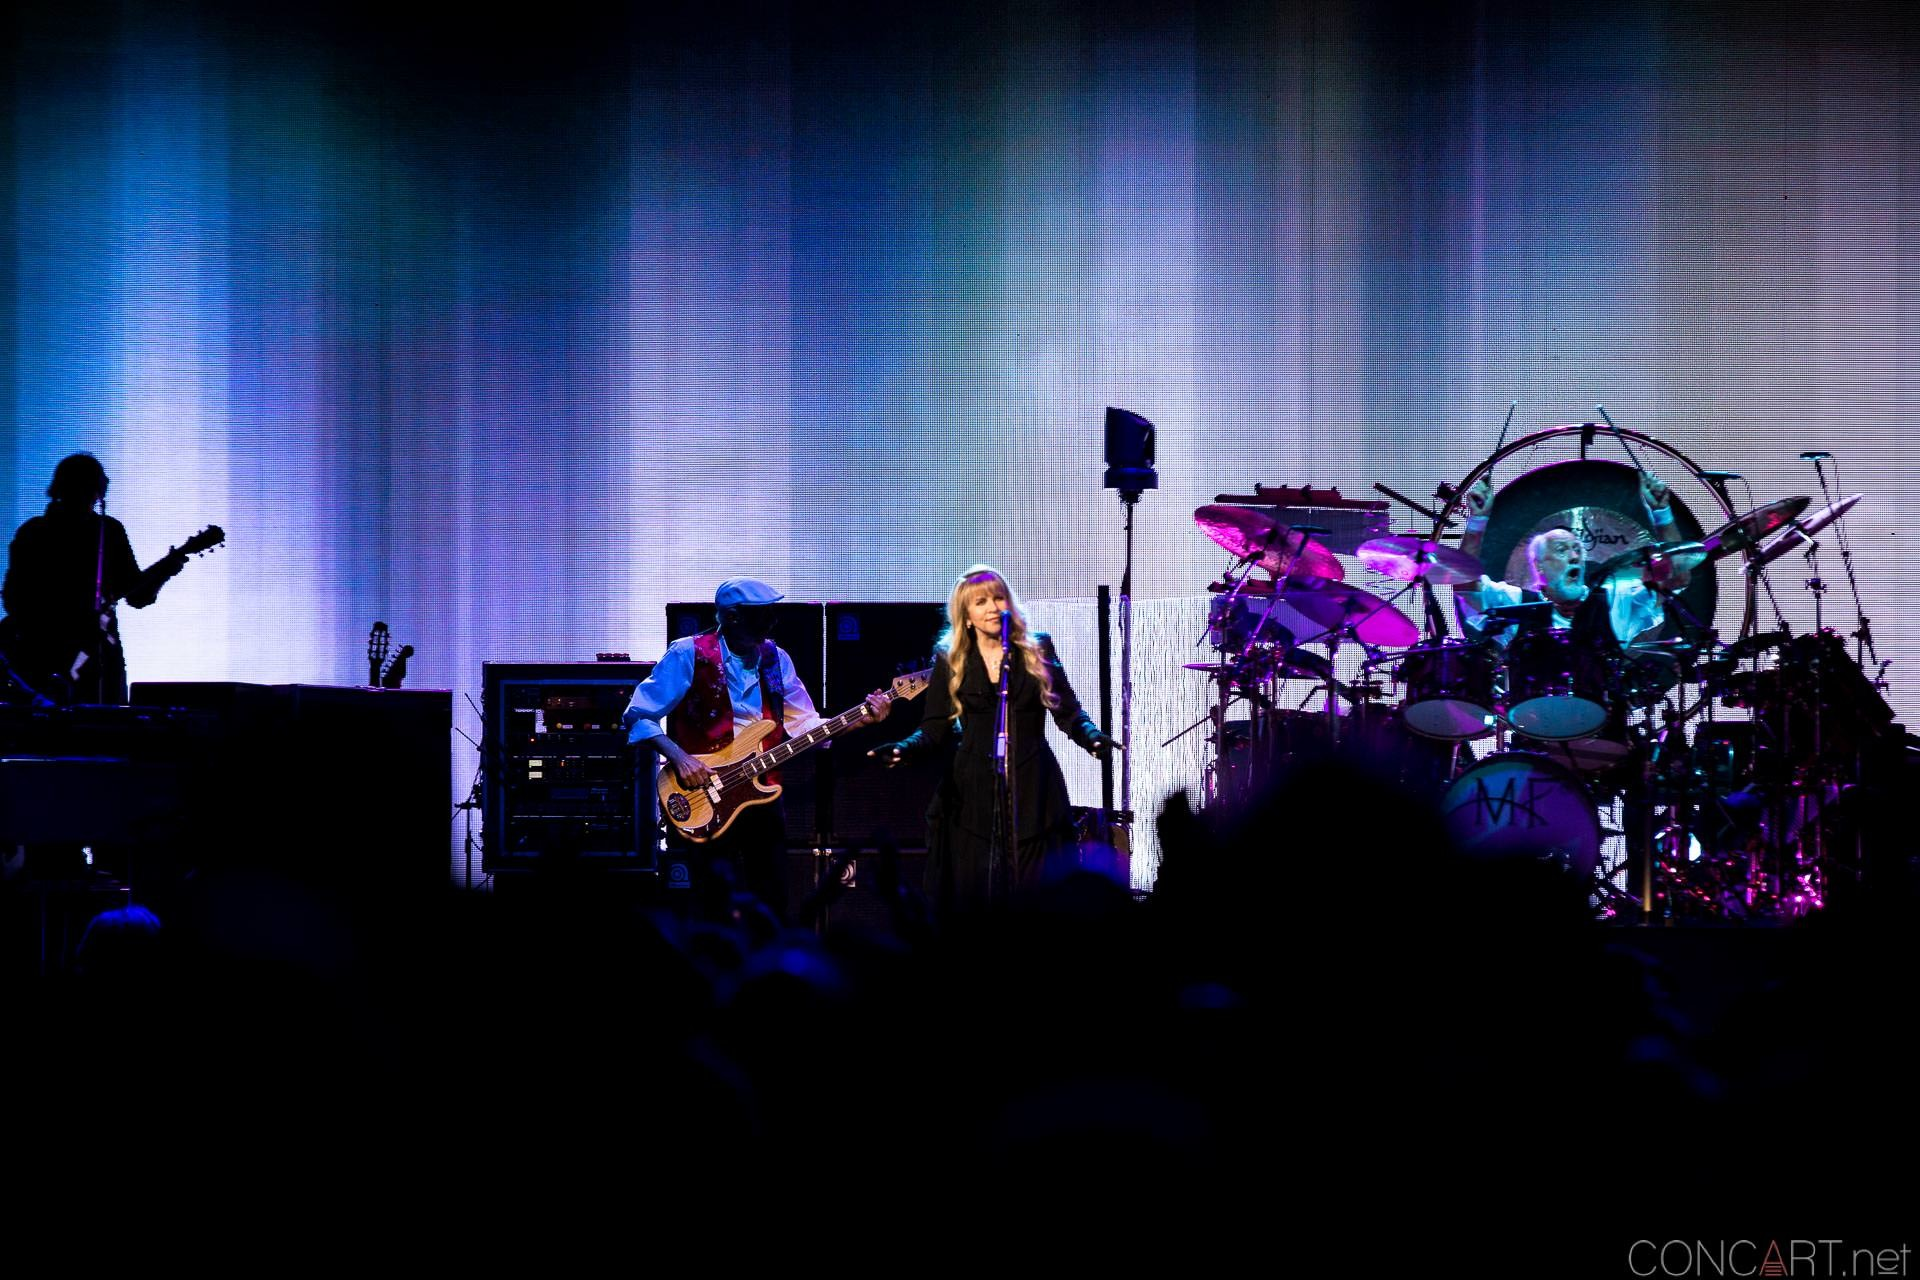 017-fleetwood-mac-live-indianapolis-bankers-life-fieldhouse-2014